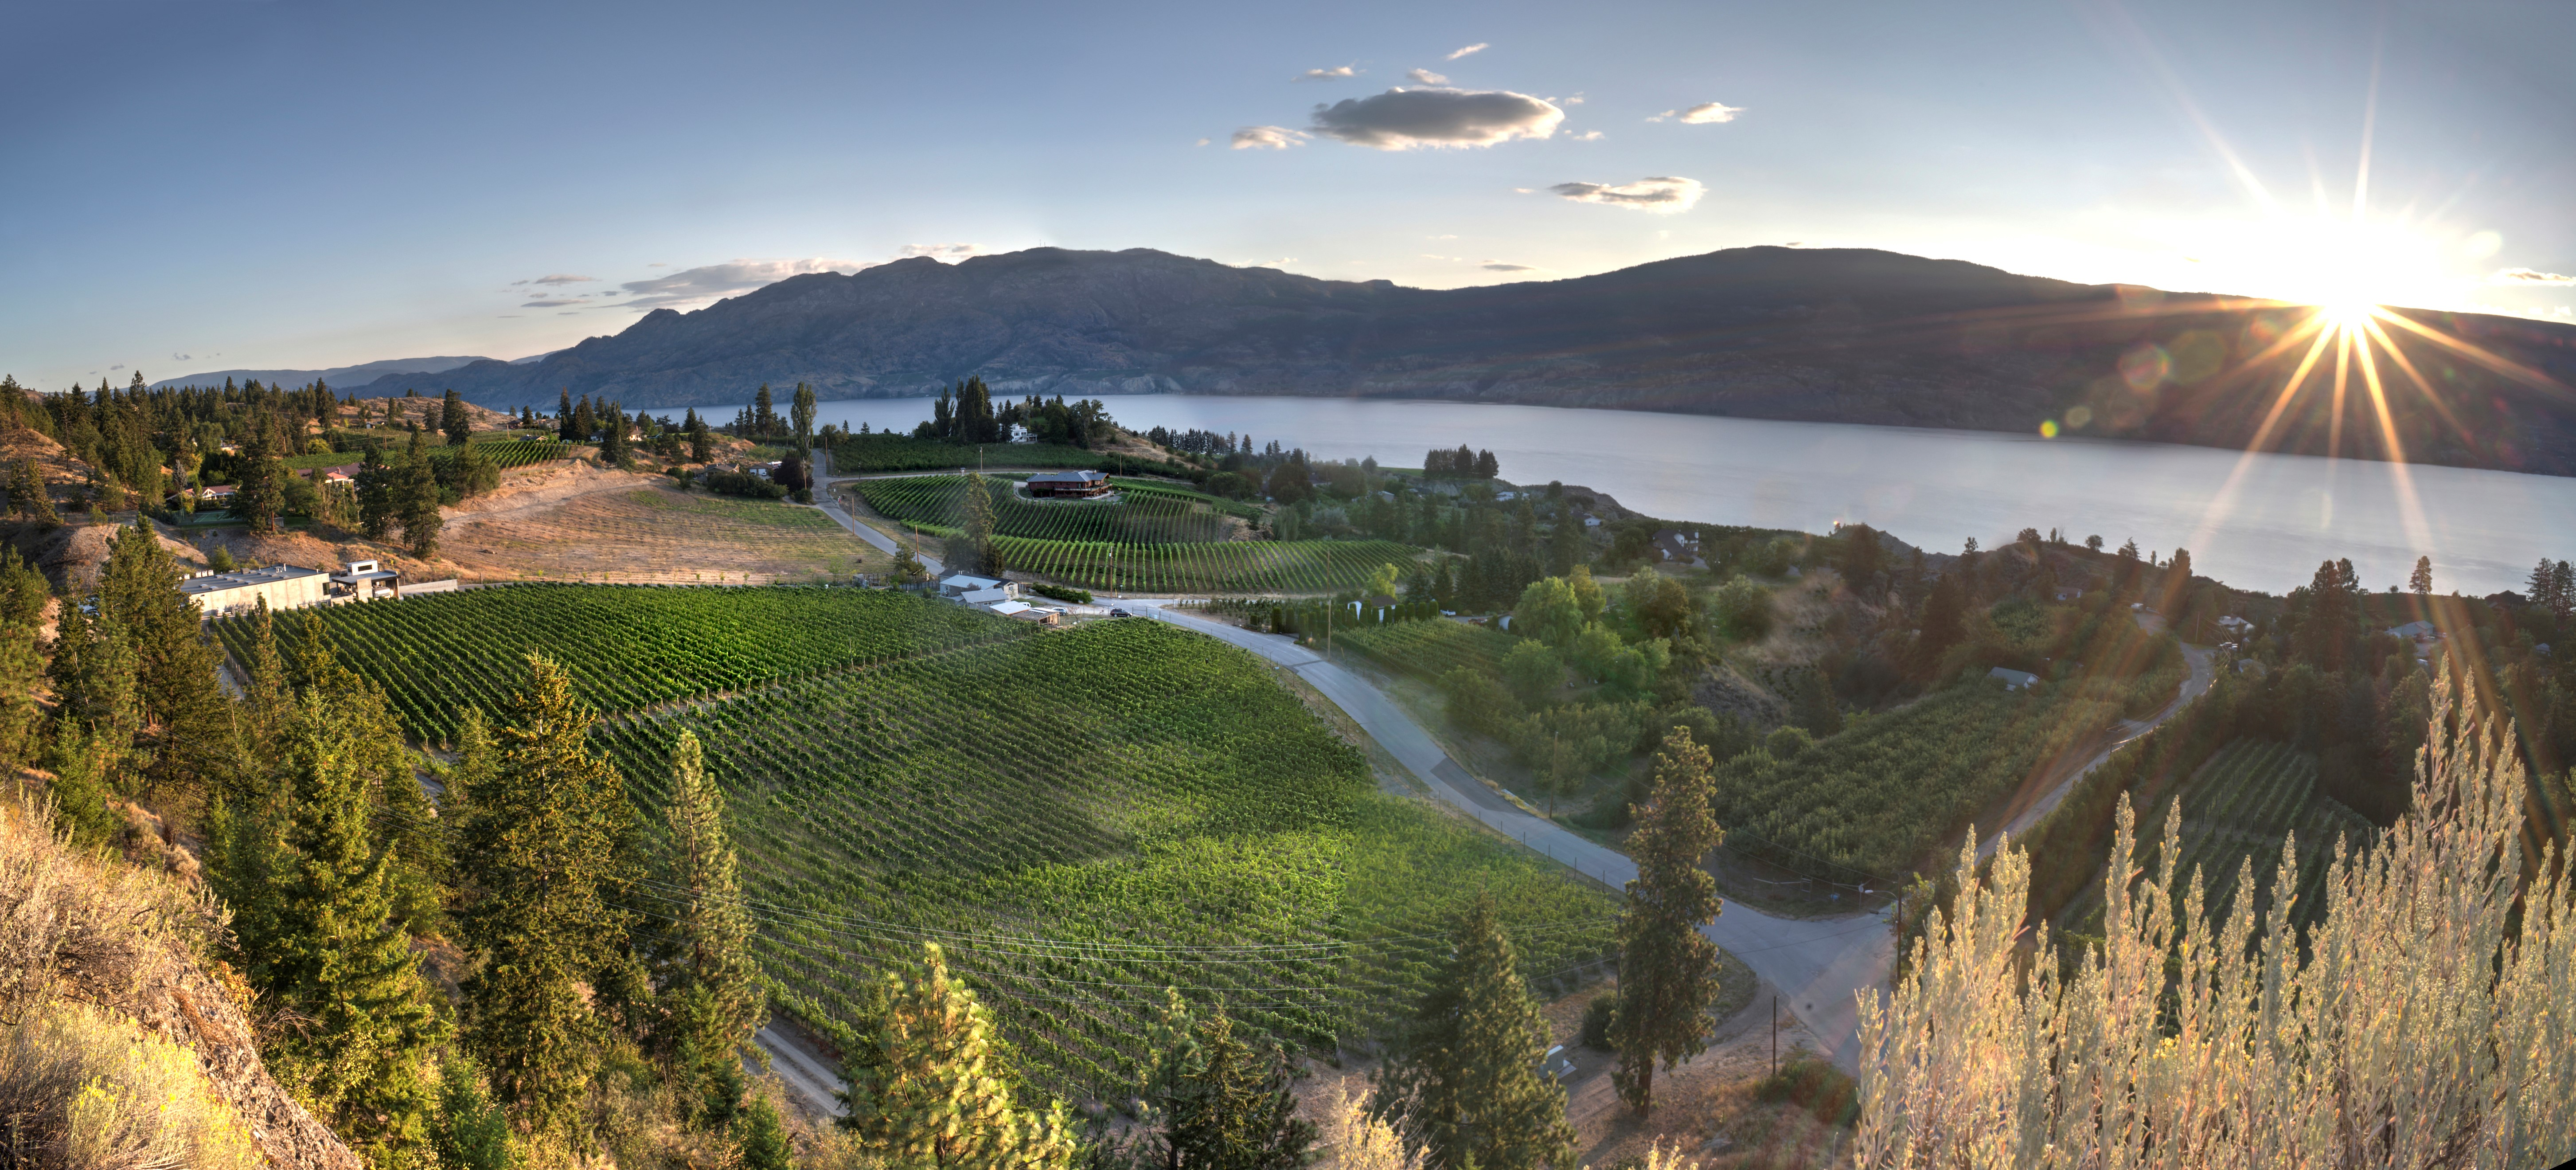 A Panoramic View of Haywire Winery's Switchback Organic Vineyard with Lake Okanagan in the Distance